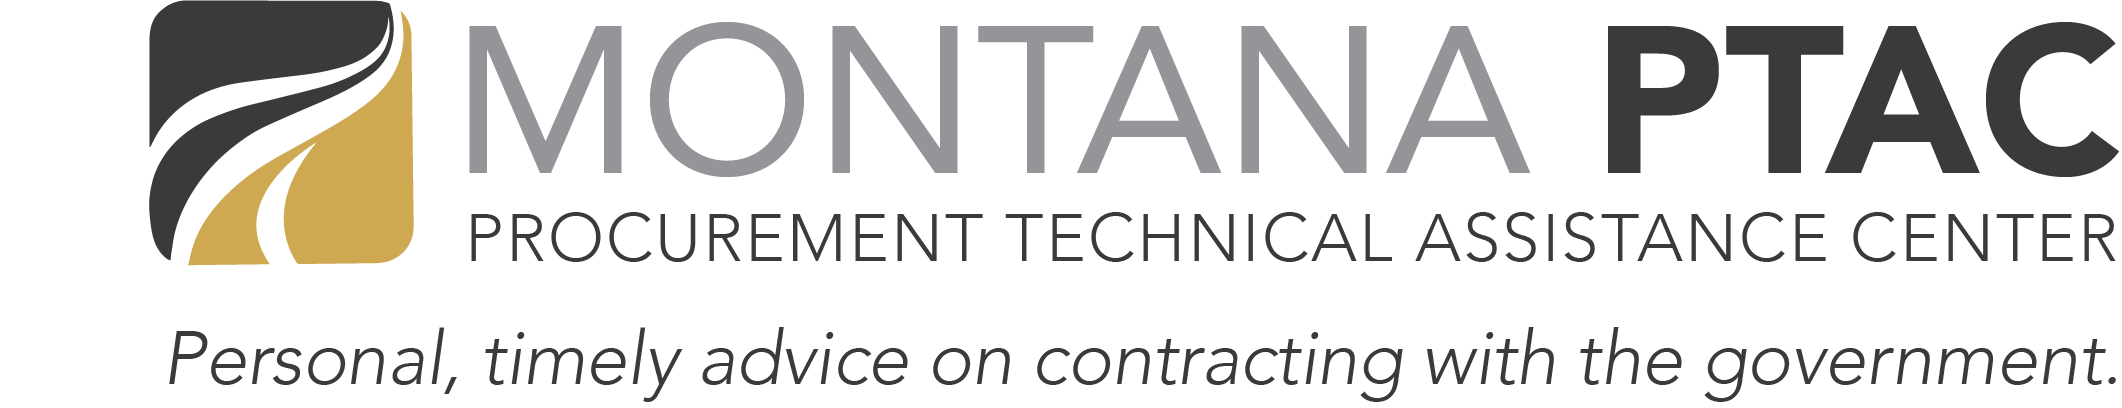 Montana Procurement and Technical Assistance Logo